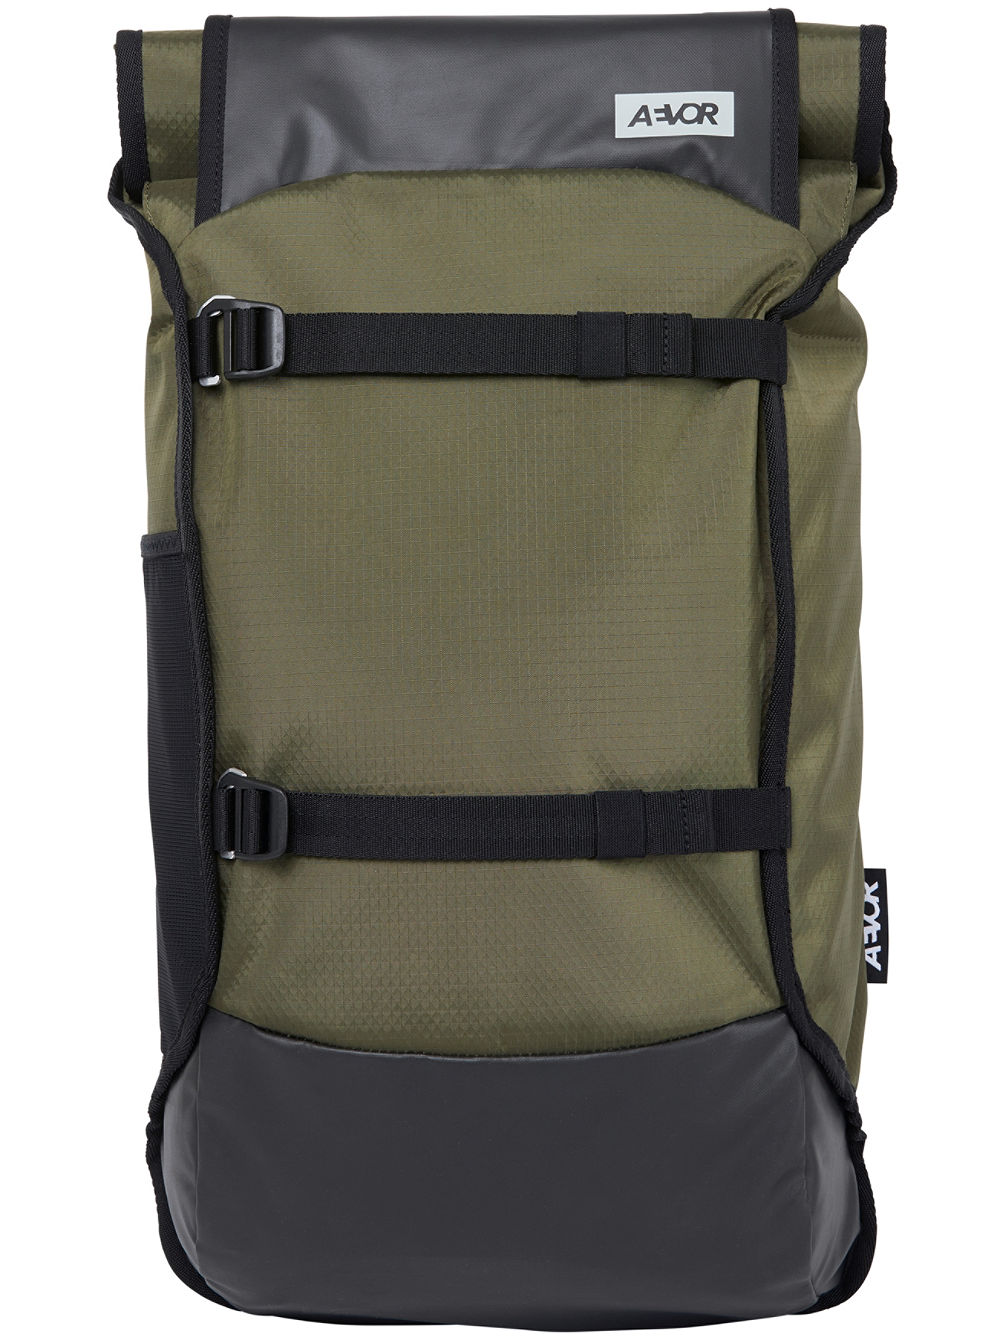 Trip Pack Proof Rucksack